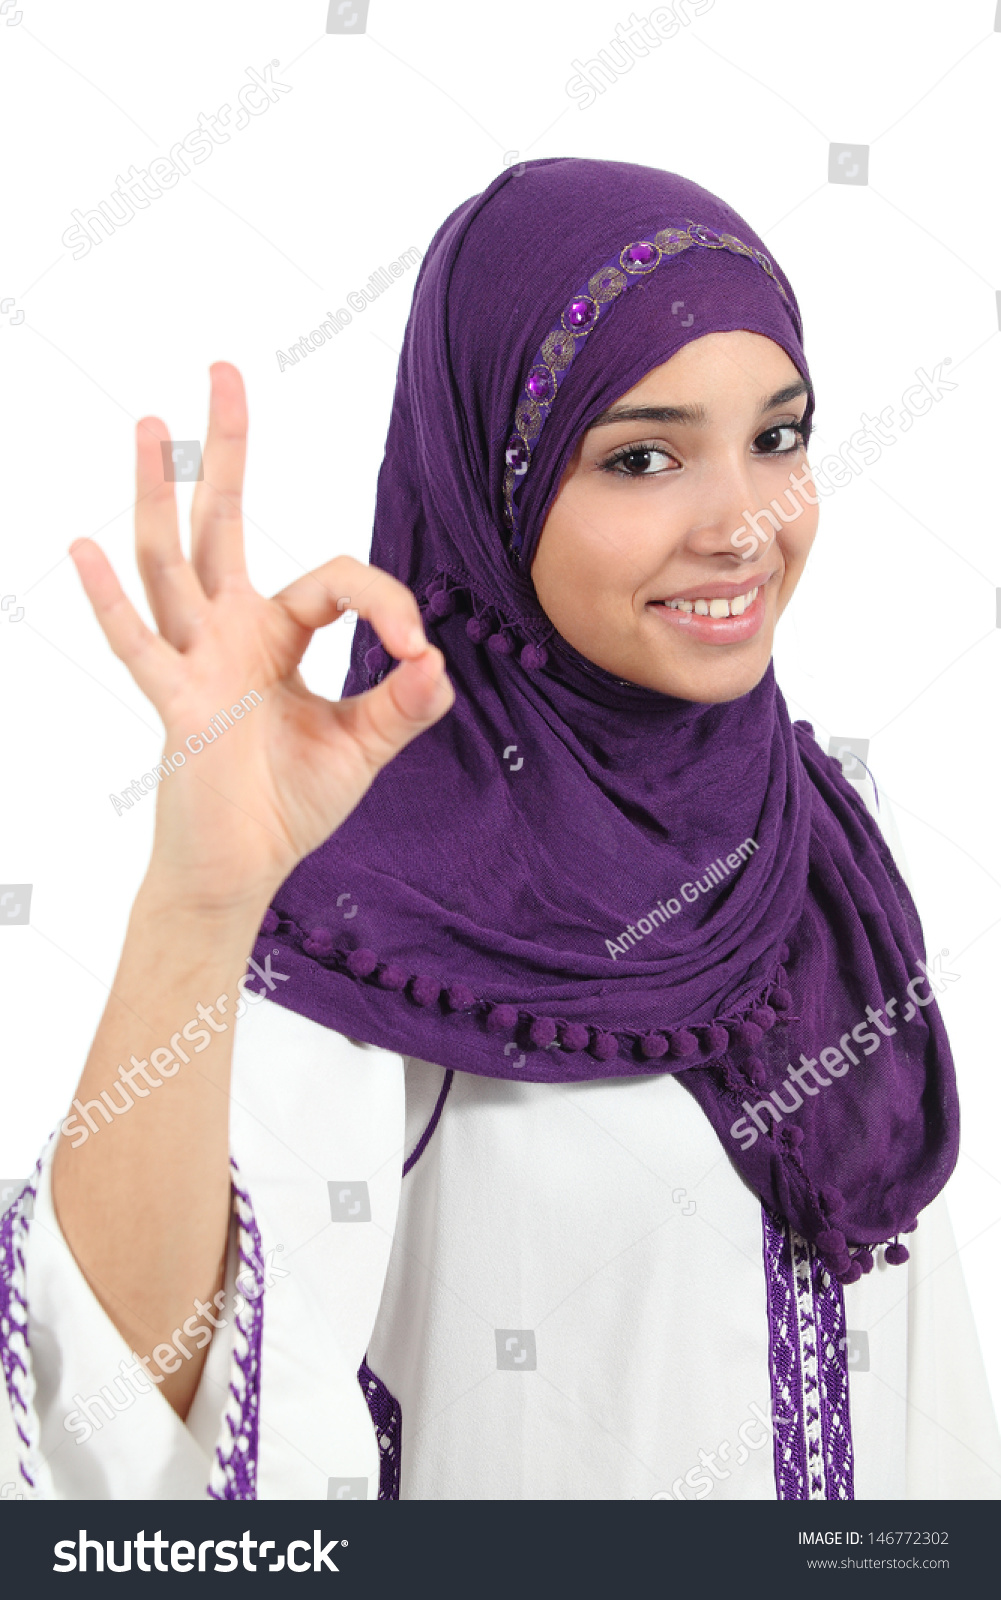 Image result for happy muslim